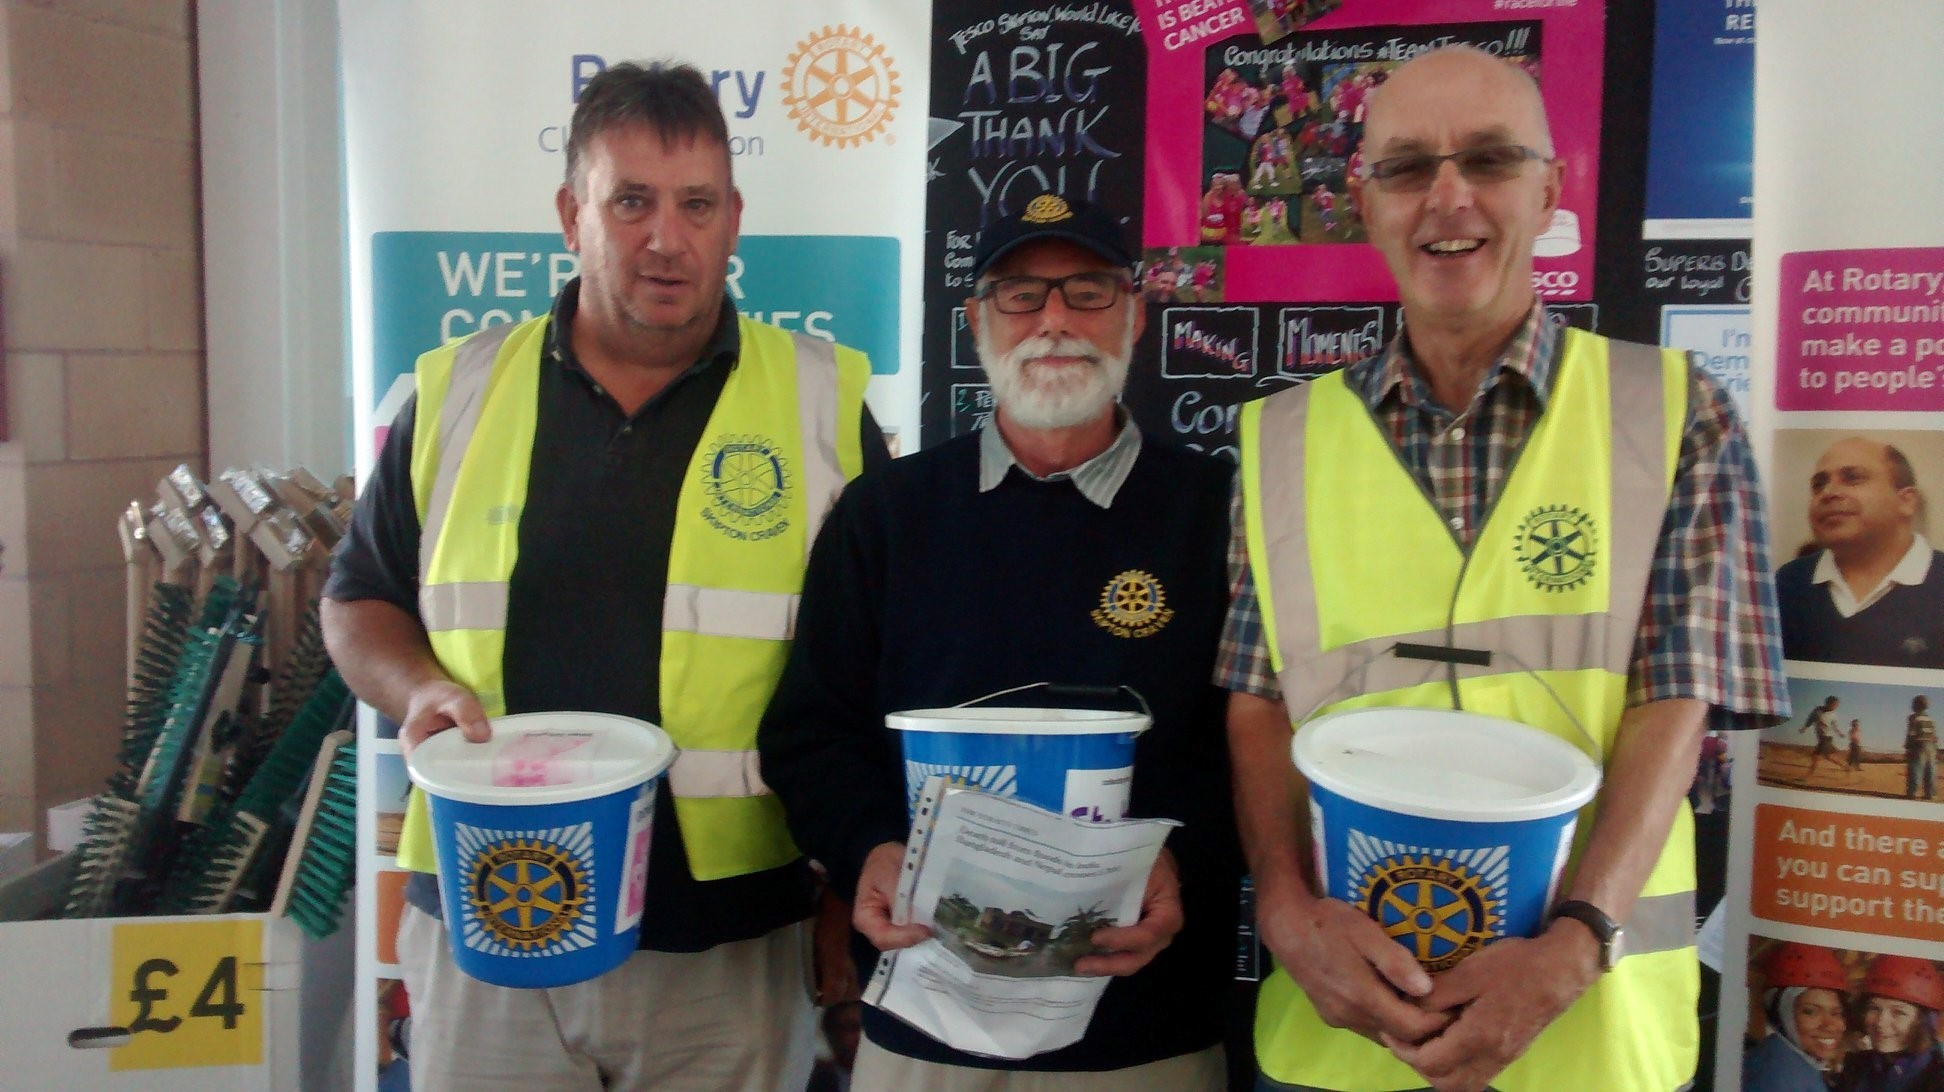 Tesco collection, from left:  Bob Marchant, Keith Brassington and Michael Thornett.